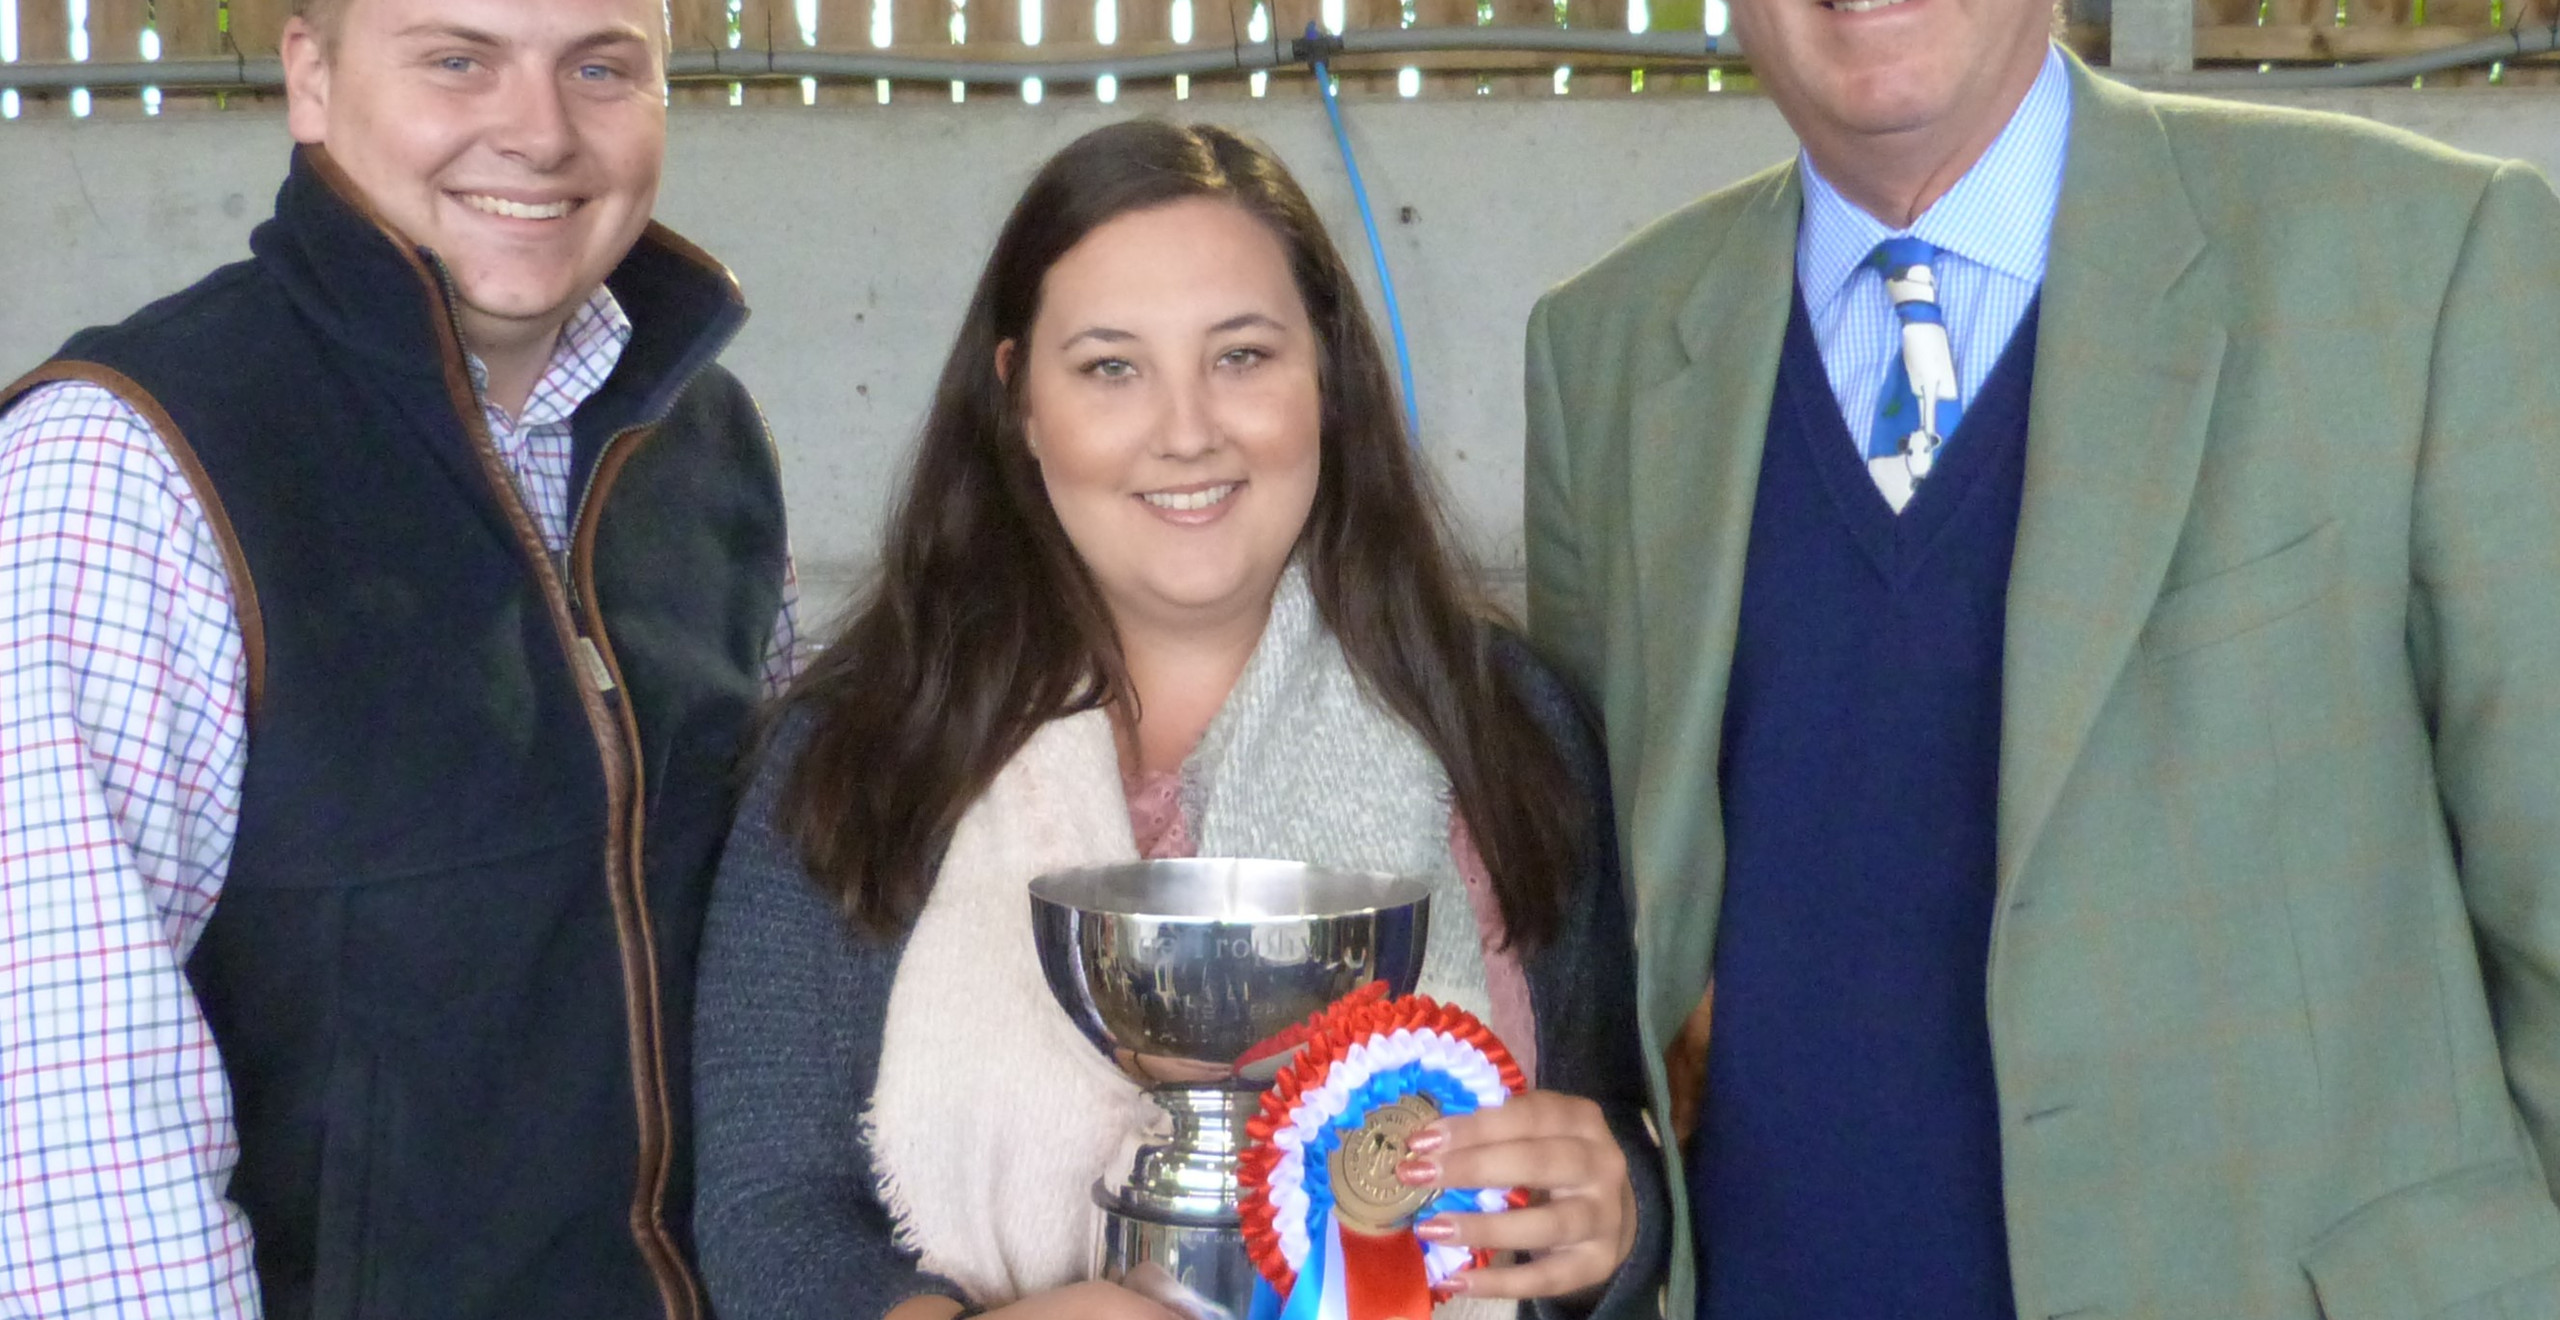 James Brain and Lottie Thomas win Cow of the Year with Hartsdesire Bumble Bee